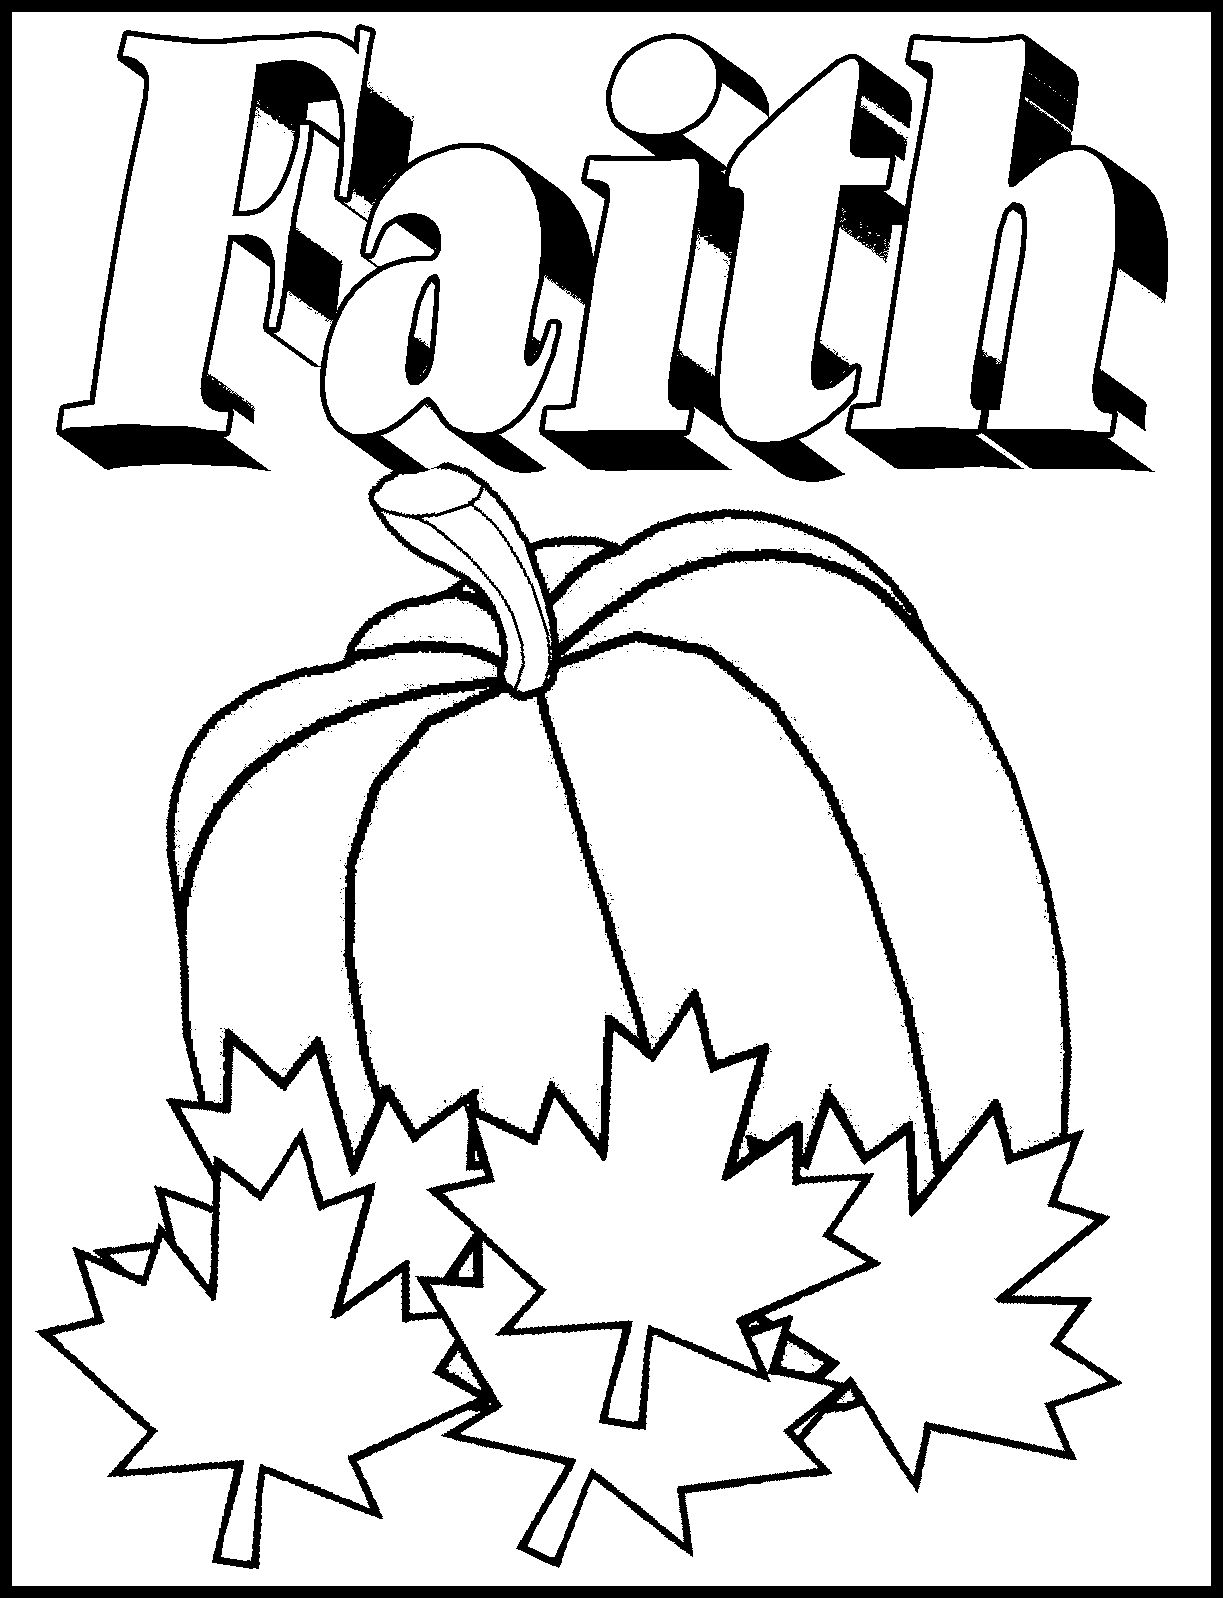 christian pumpkin coloring pages - photo#13